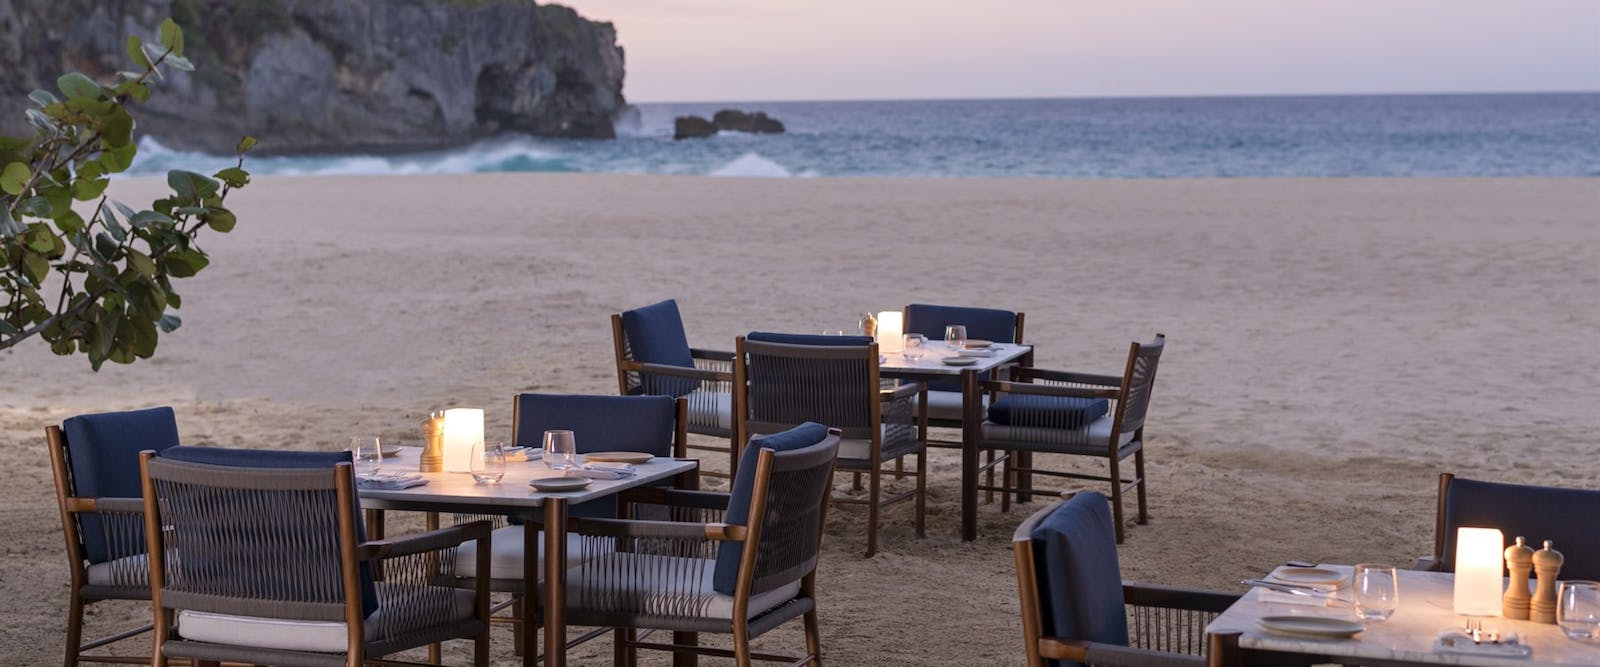 Beach Club Restaurant at Amanera, Dominican Republic